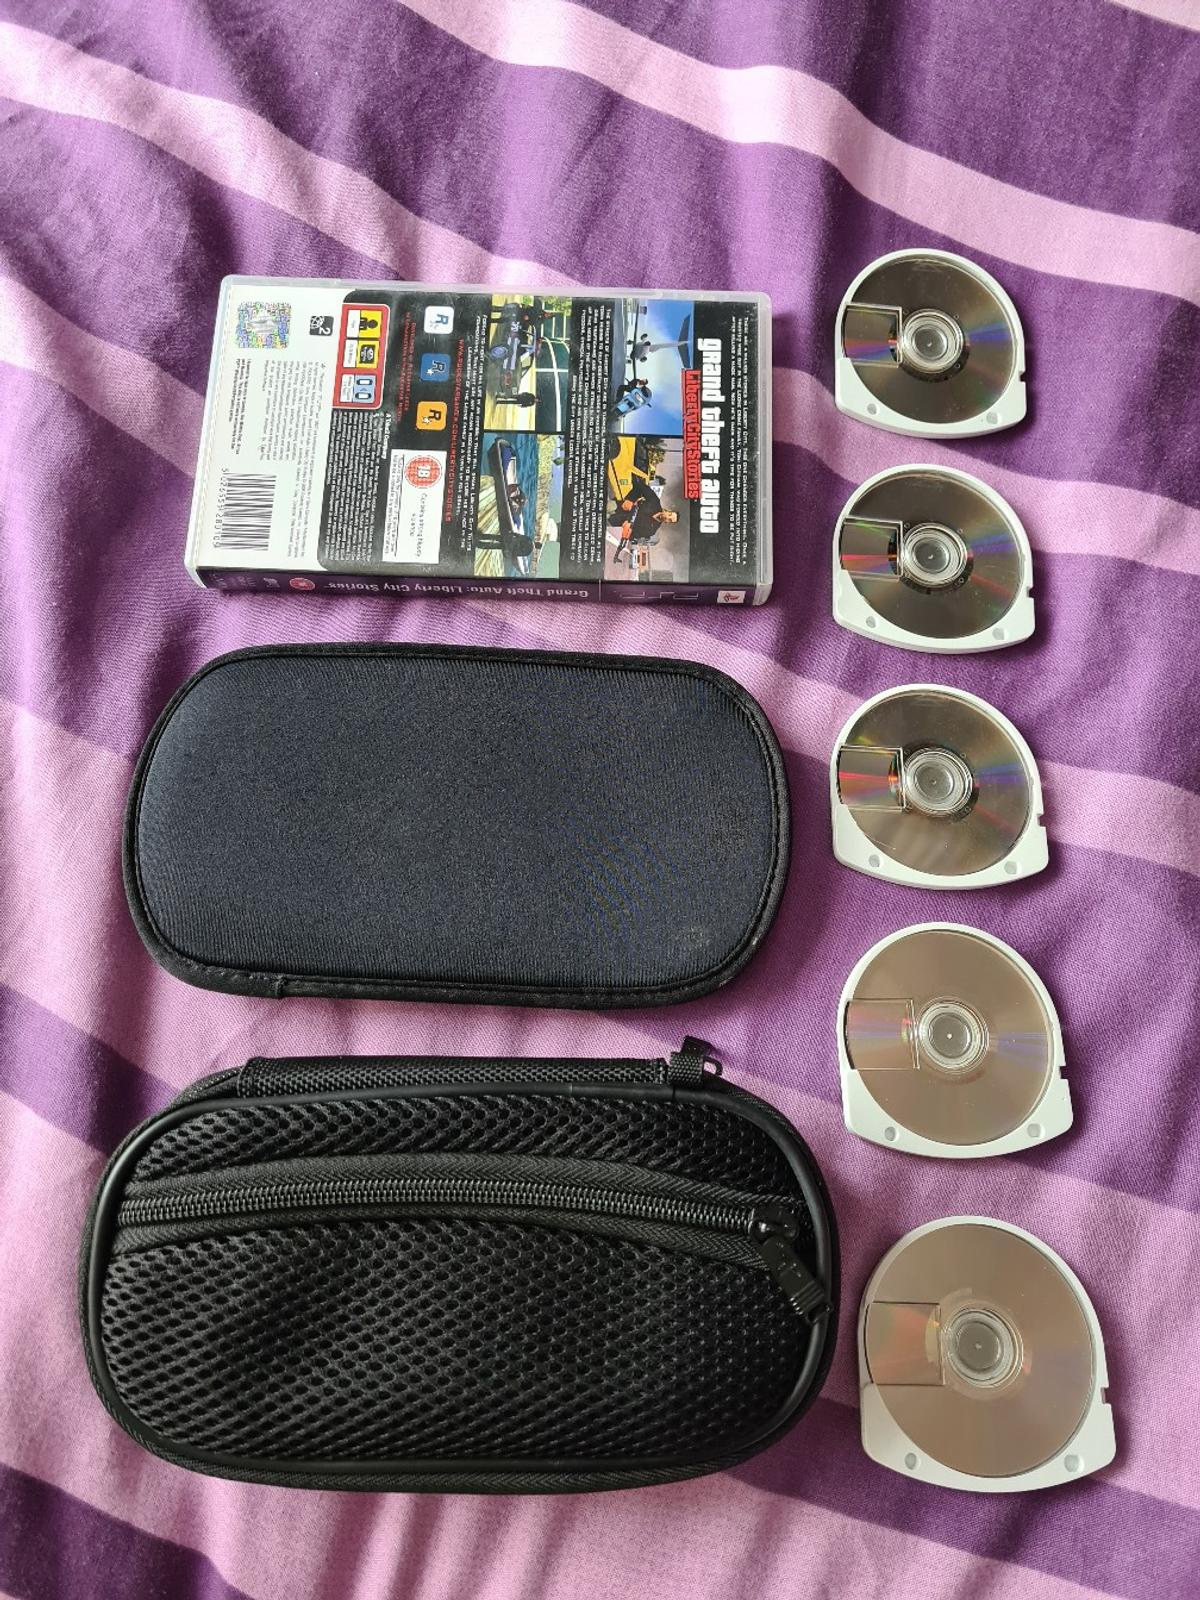 5x PSP games + 2x official cases Includes: GTA: liberty City stories, Star Wars: battlefront 2, Spiderman 2, Fifa 08, Pro evolution soccer 2008 + 2x official cases (PAL) Game UMD's only except GTA that comes w/ box In good condition, tested & working Everything as seen in pics From a pet & smoke free home Collection S63 P&P available (can also do combined) Check out my other items for sale Any questions please ask